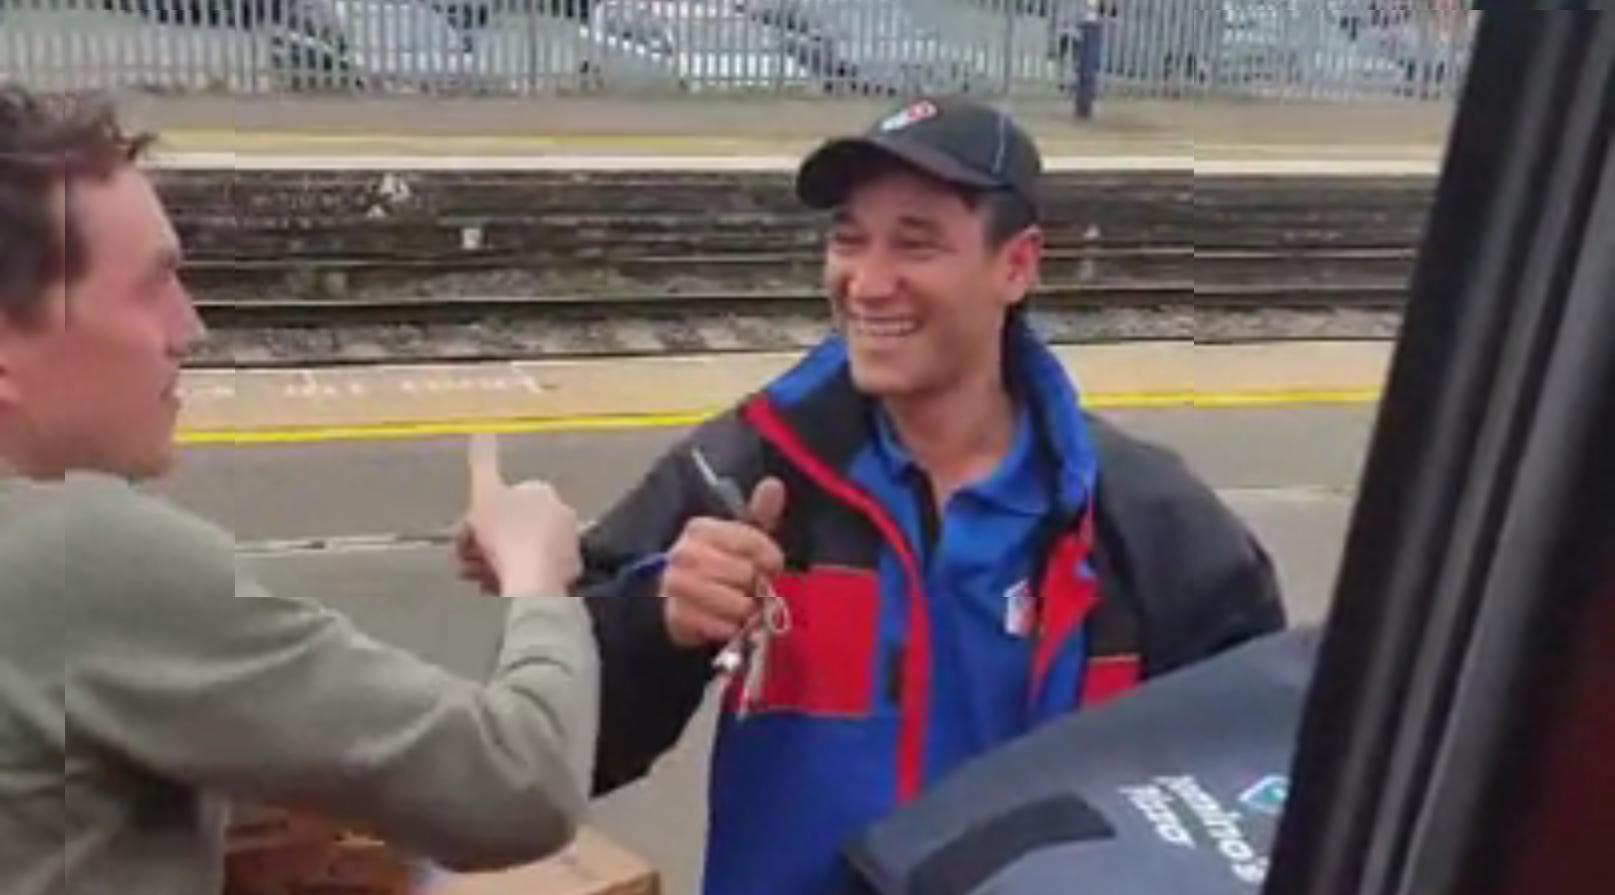 [GIF] Guy Orders Dominos Pizza From Train and Gets It Delivered on Train Platform